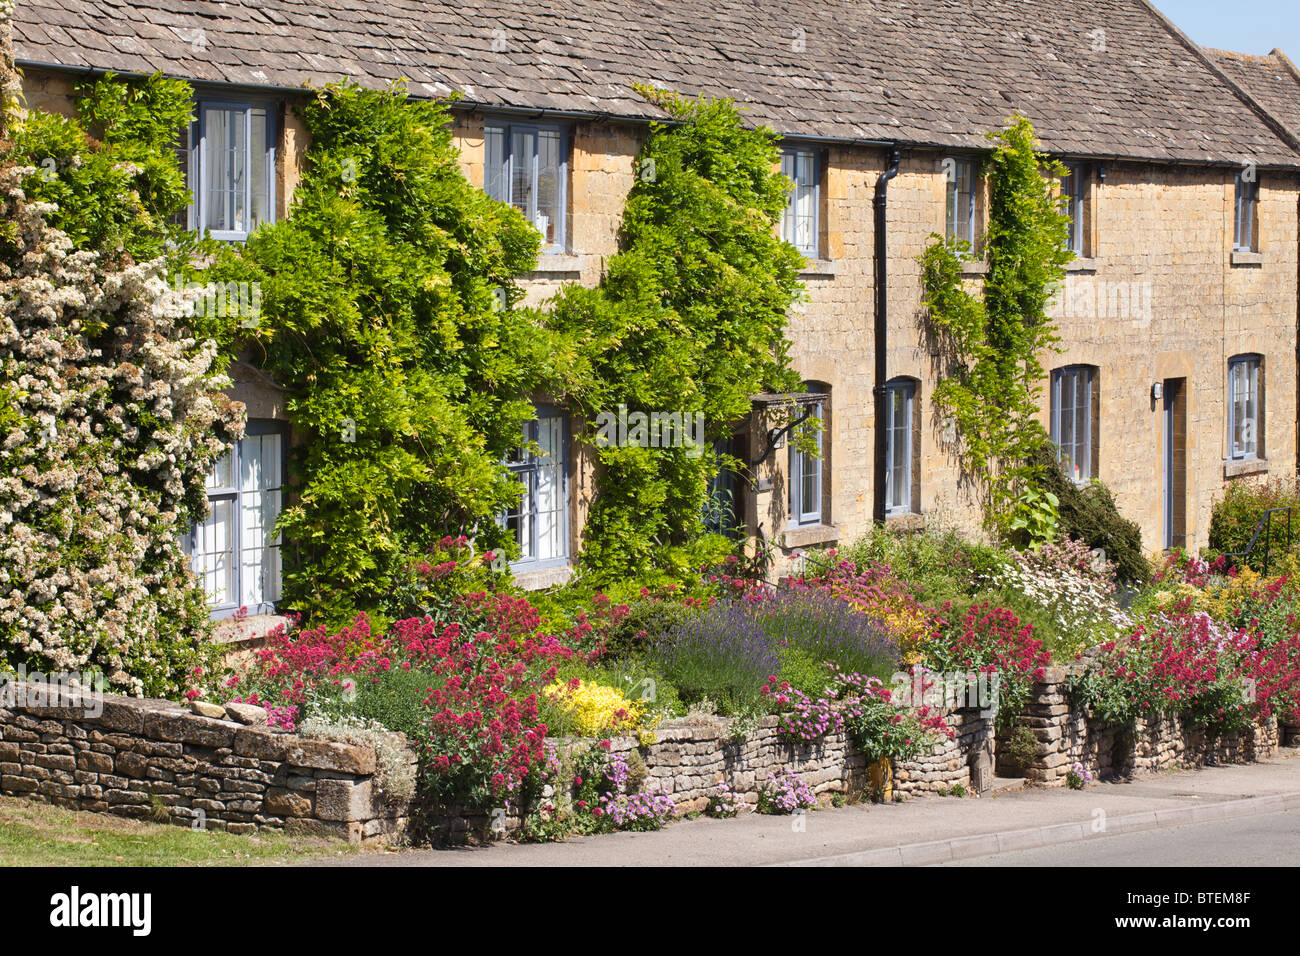 Summer flowers on cottage garden walls in the Cotswold village of Bourton on the Hill, Gloucestershire - Stock Image